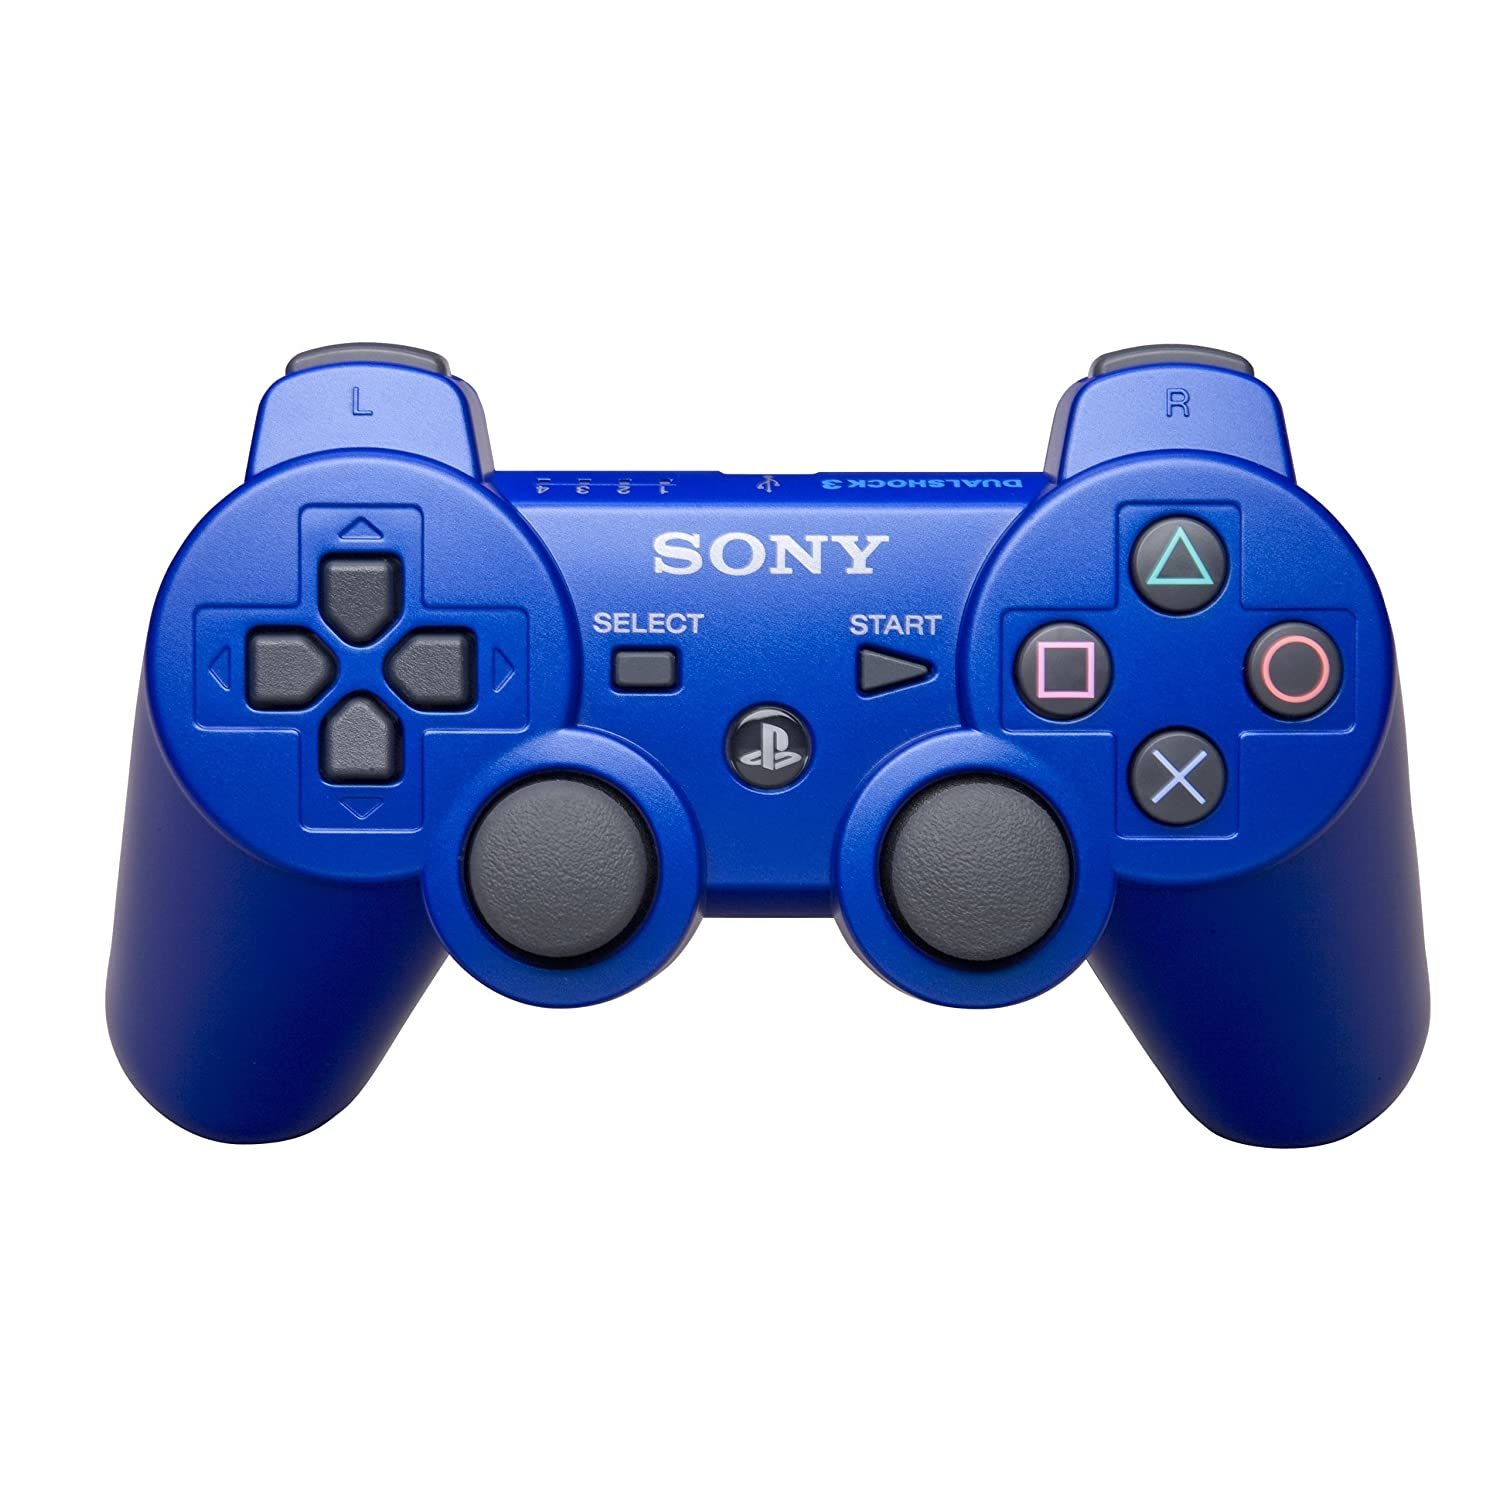 sony blue ps3 dualshock 3 wireless controller brand new ebay. Black Bedroom Furniture Sets. Home Design Ideas